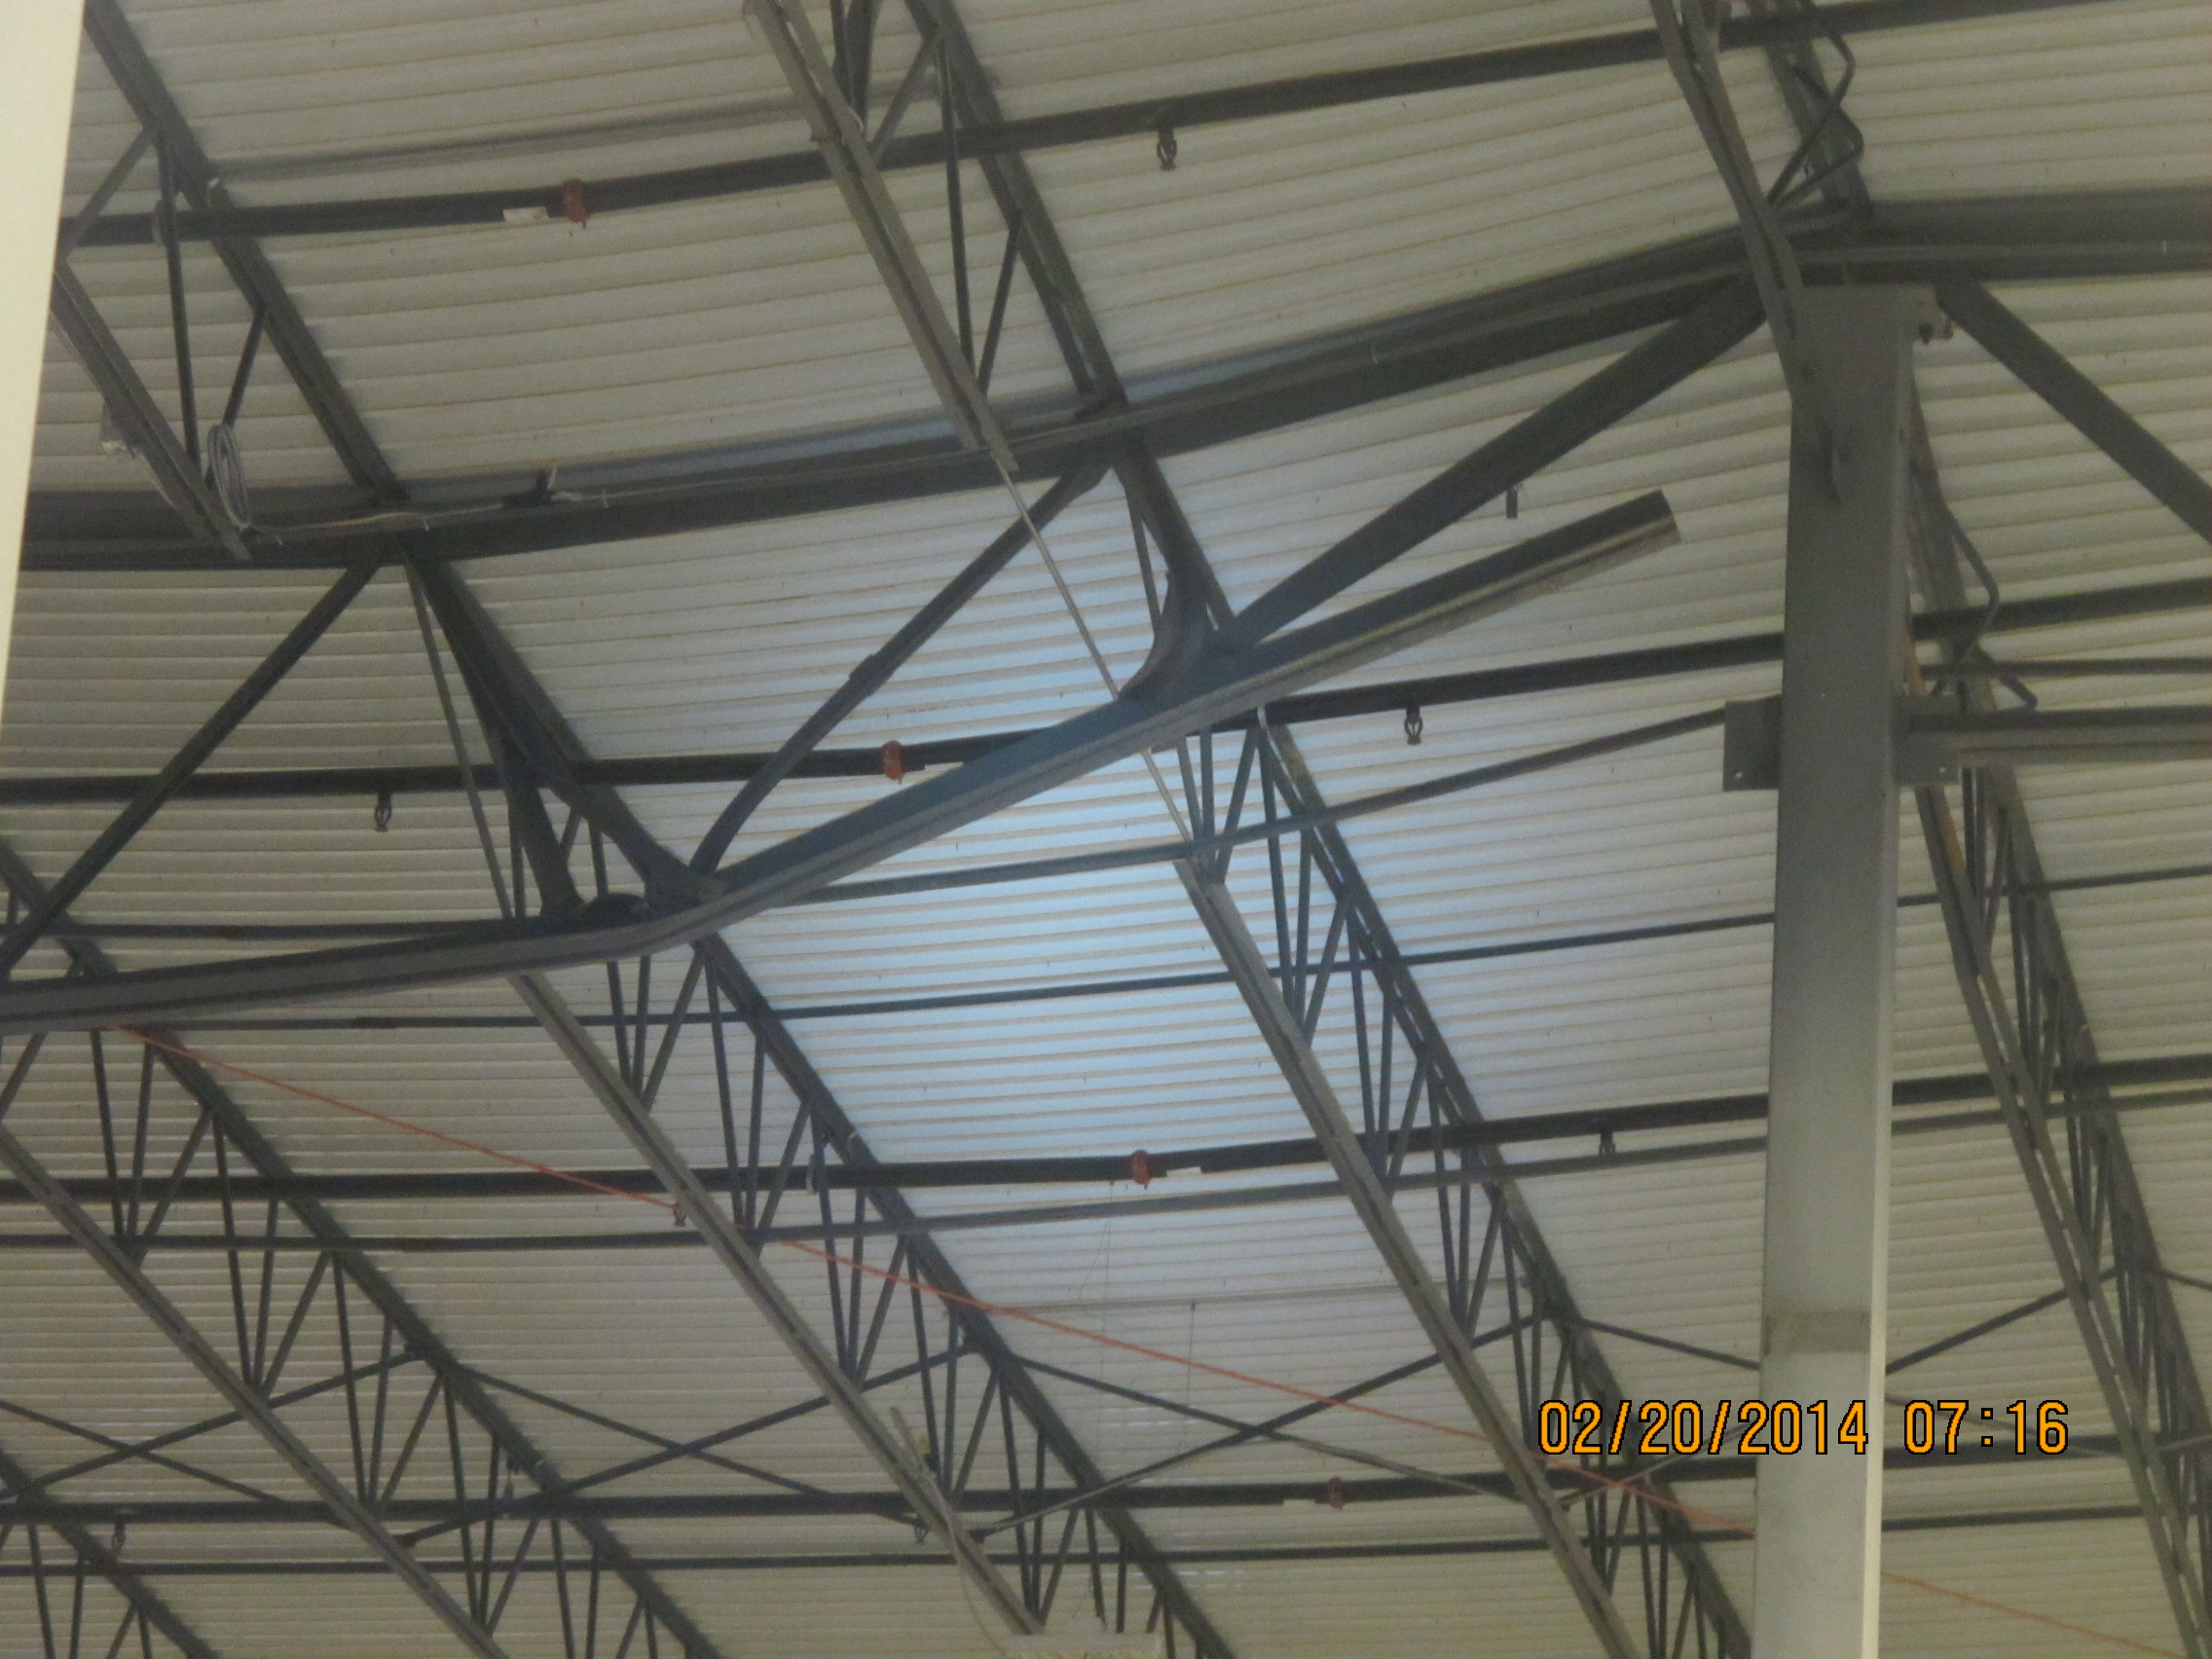 Distribution Center Roof Damage